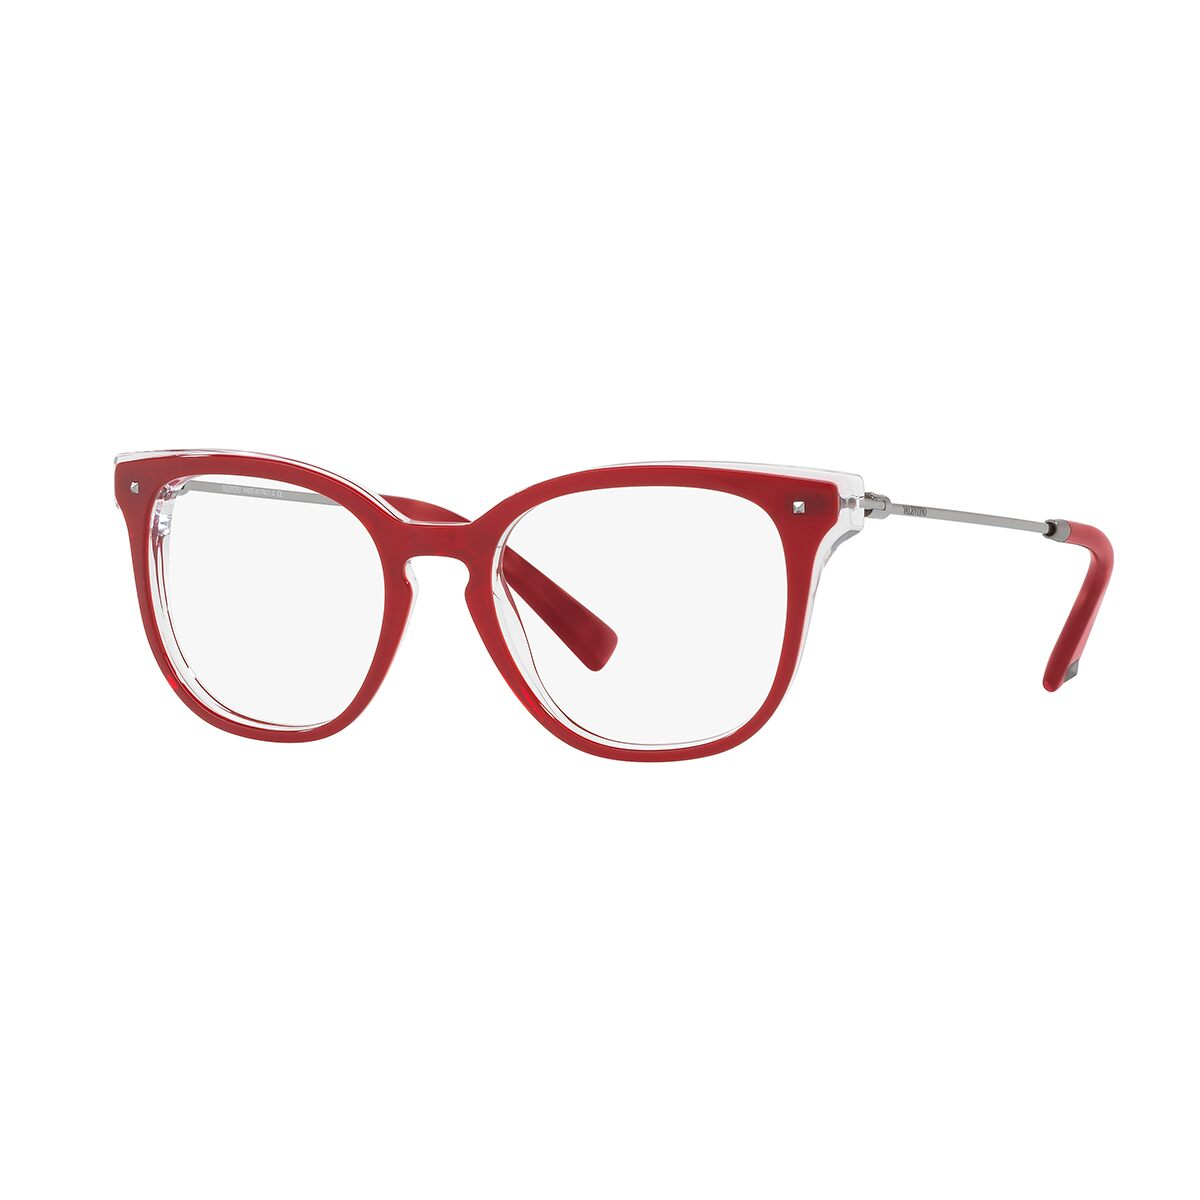 valentino eyewear collection the timeless elegance of